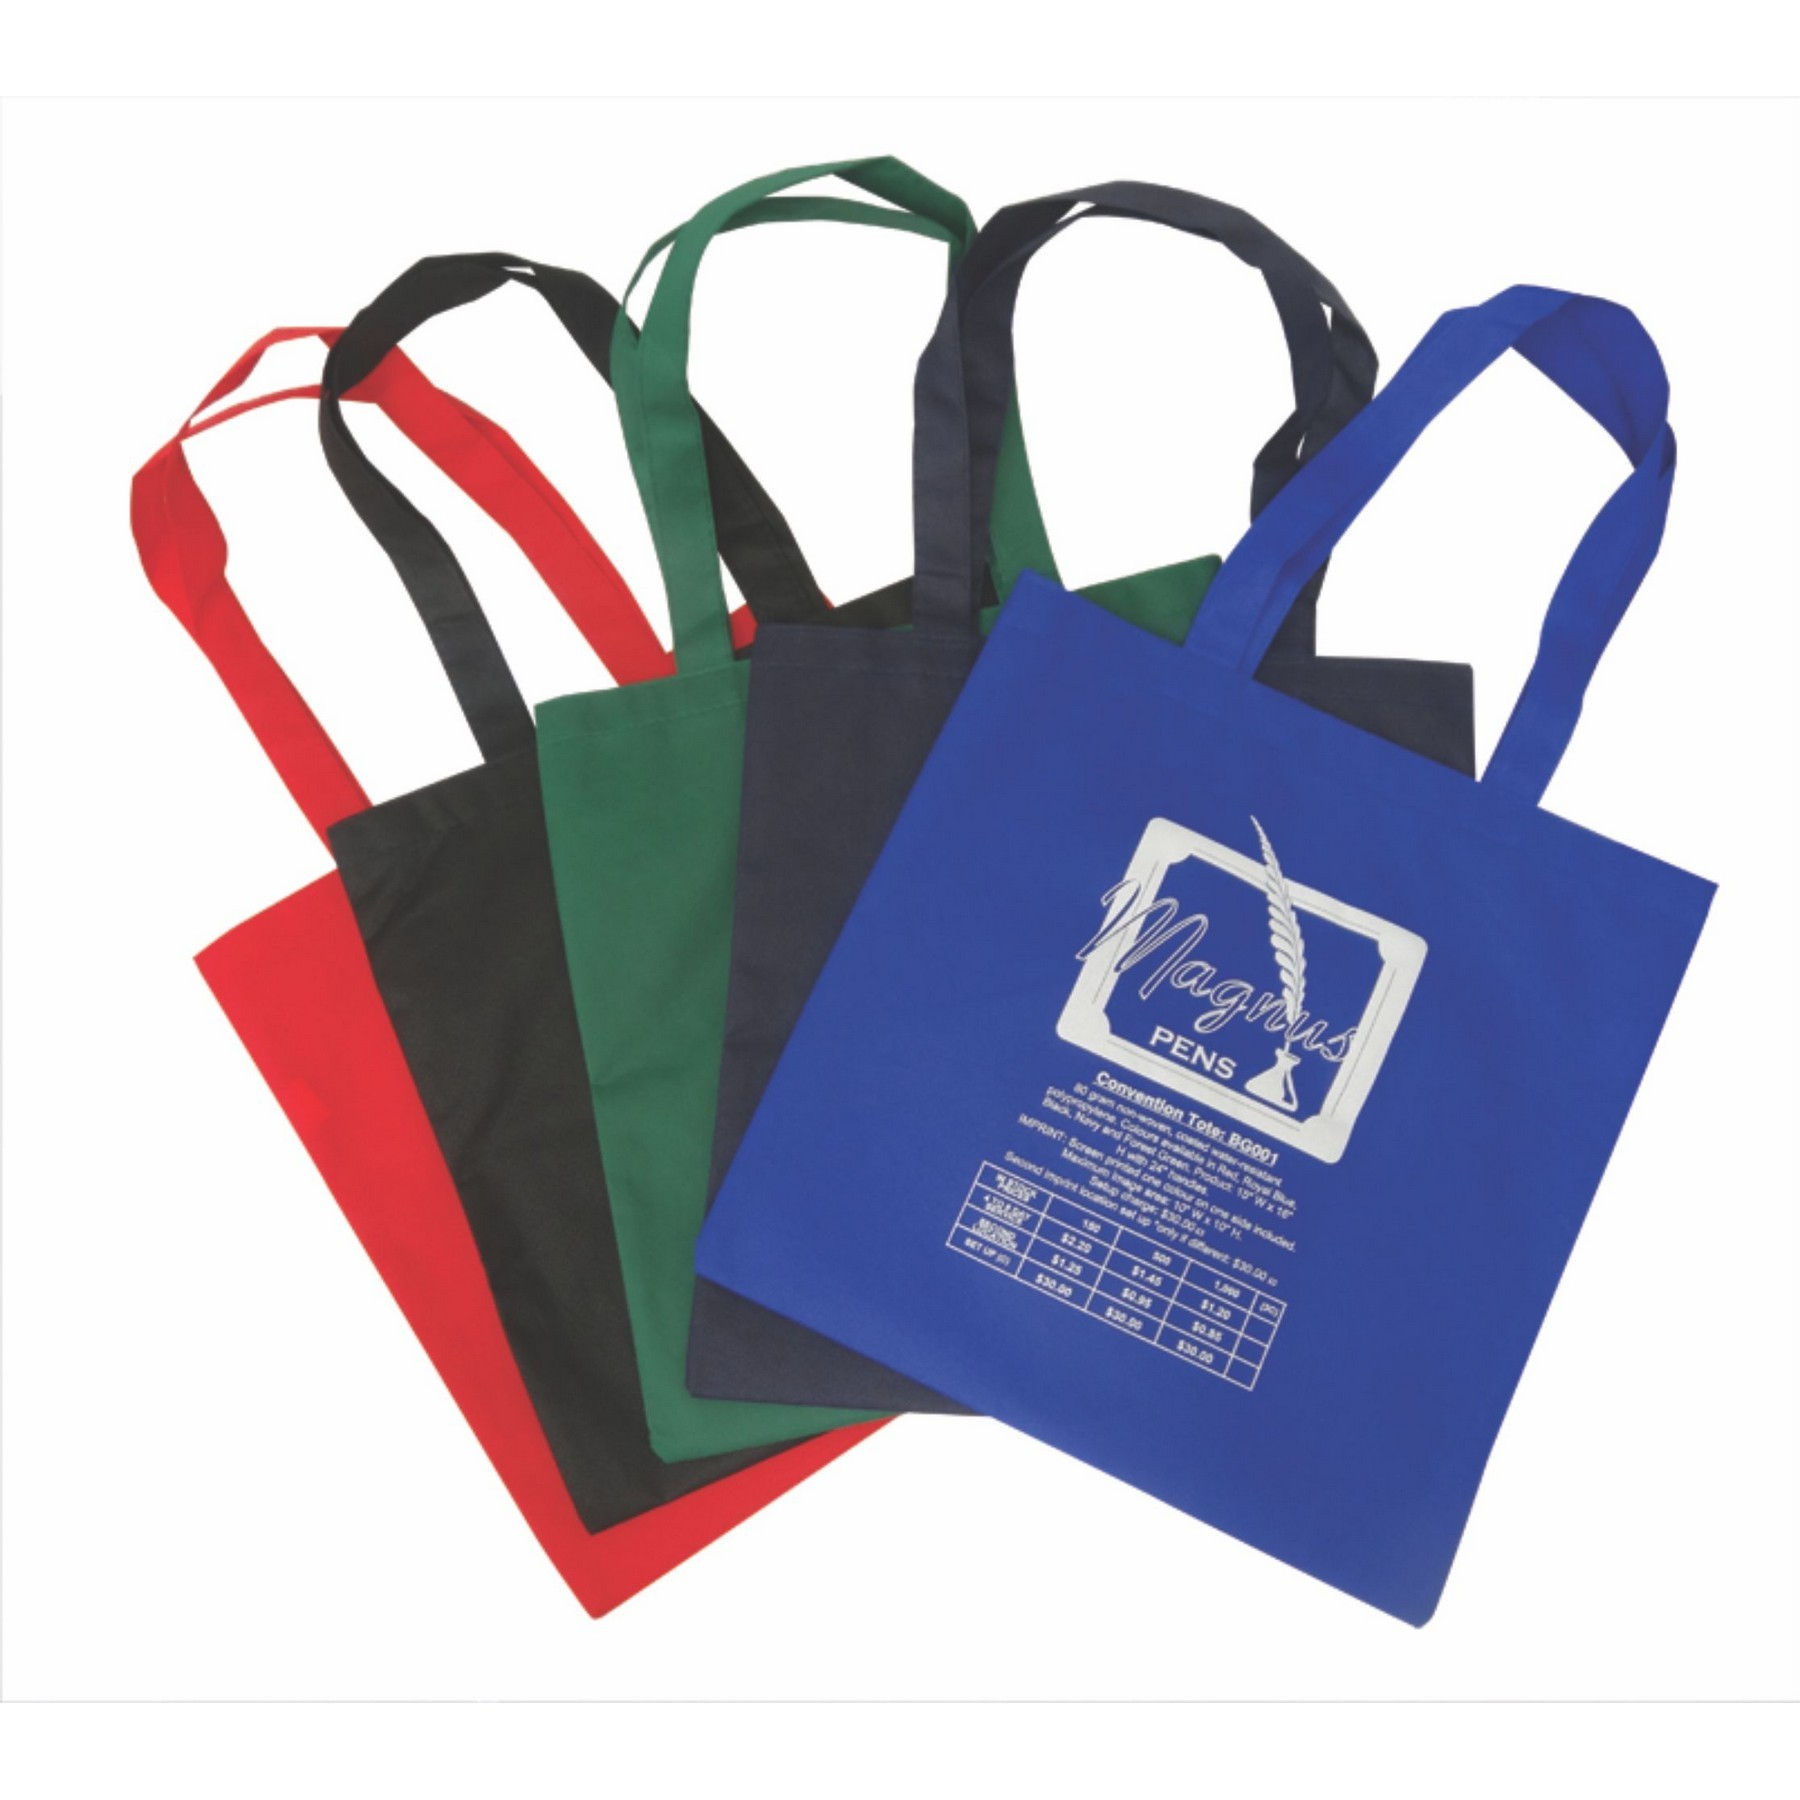 Convention Tote (10-15 days)